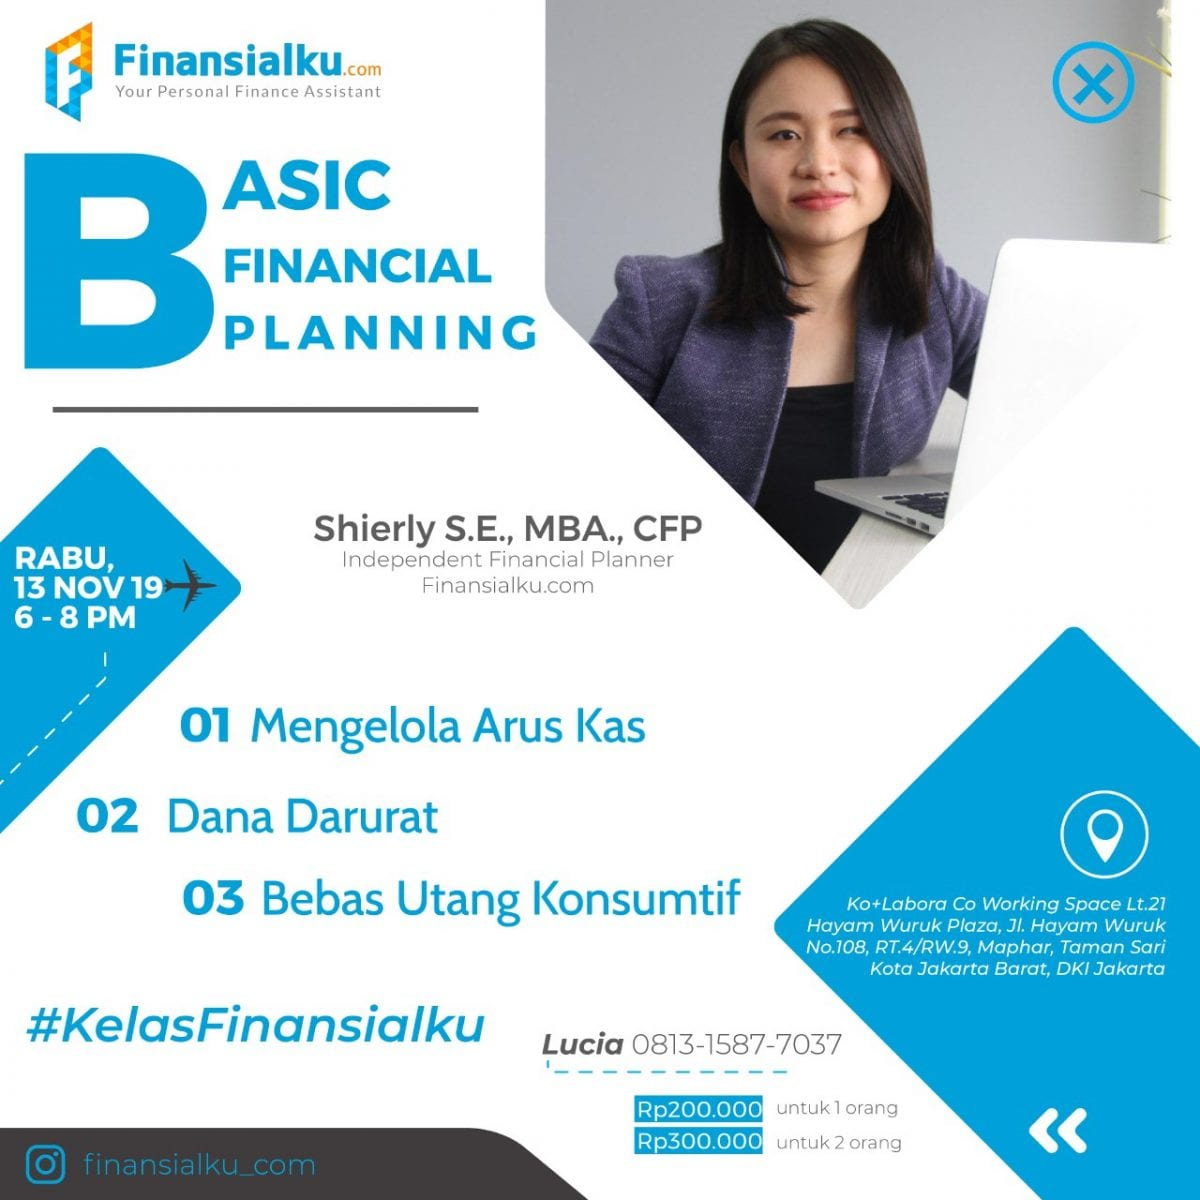 Basic Financial Planning 13 Nov 2019 Jakarta